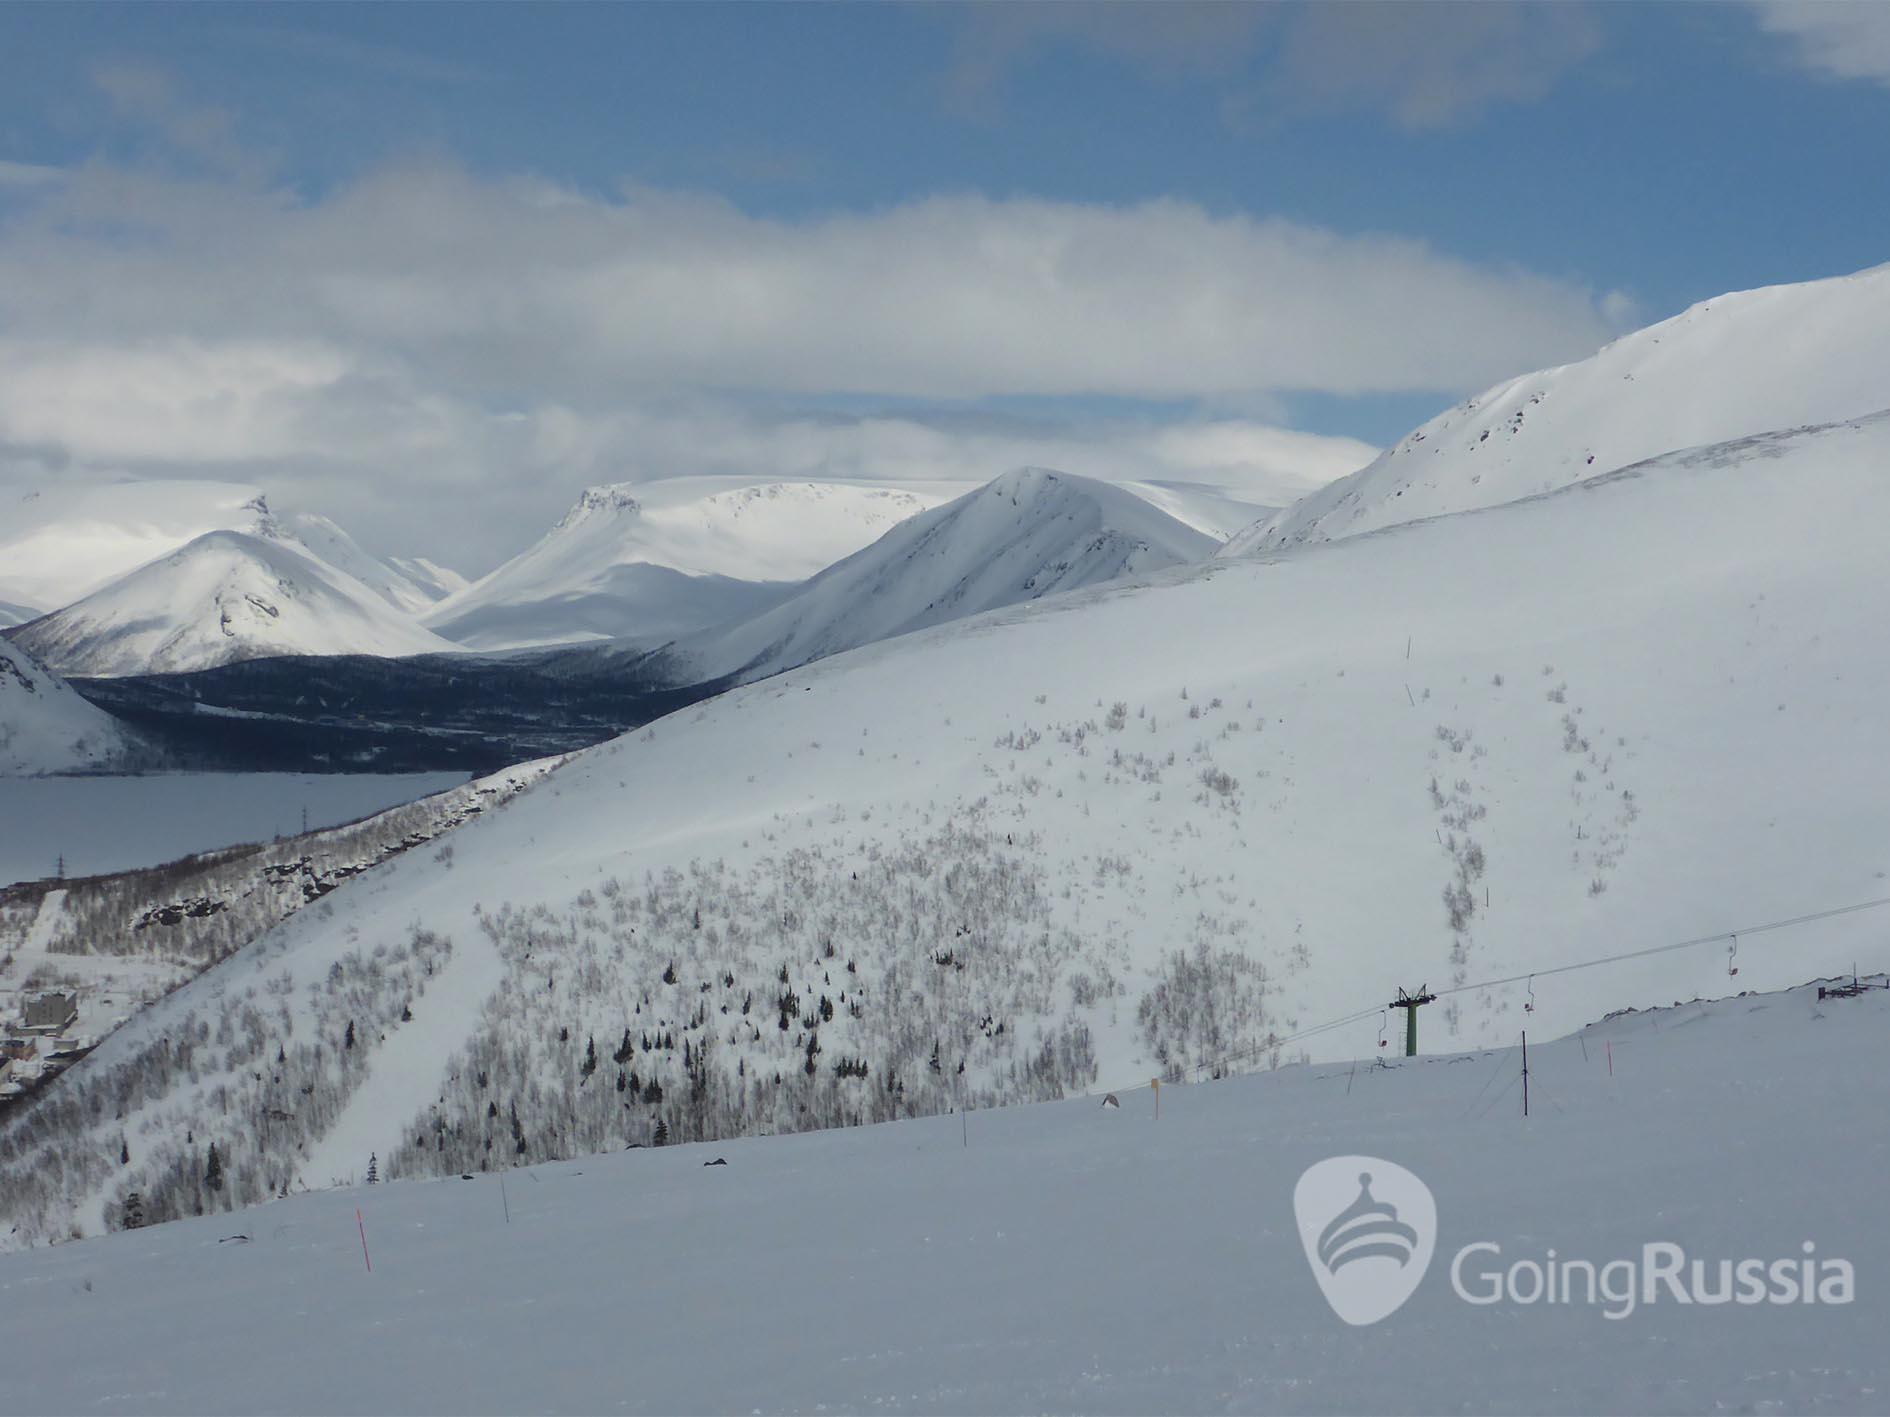 Kirovsk and the Khibiny mountains - Going Russia